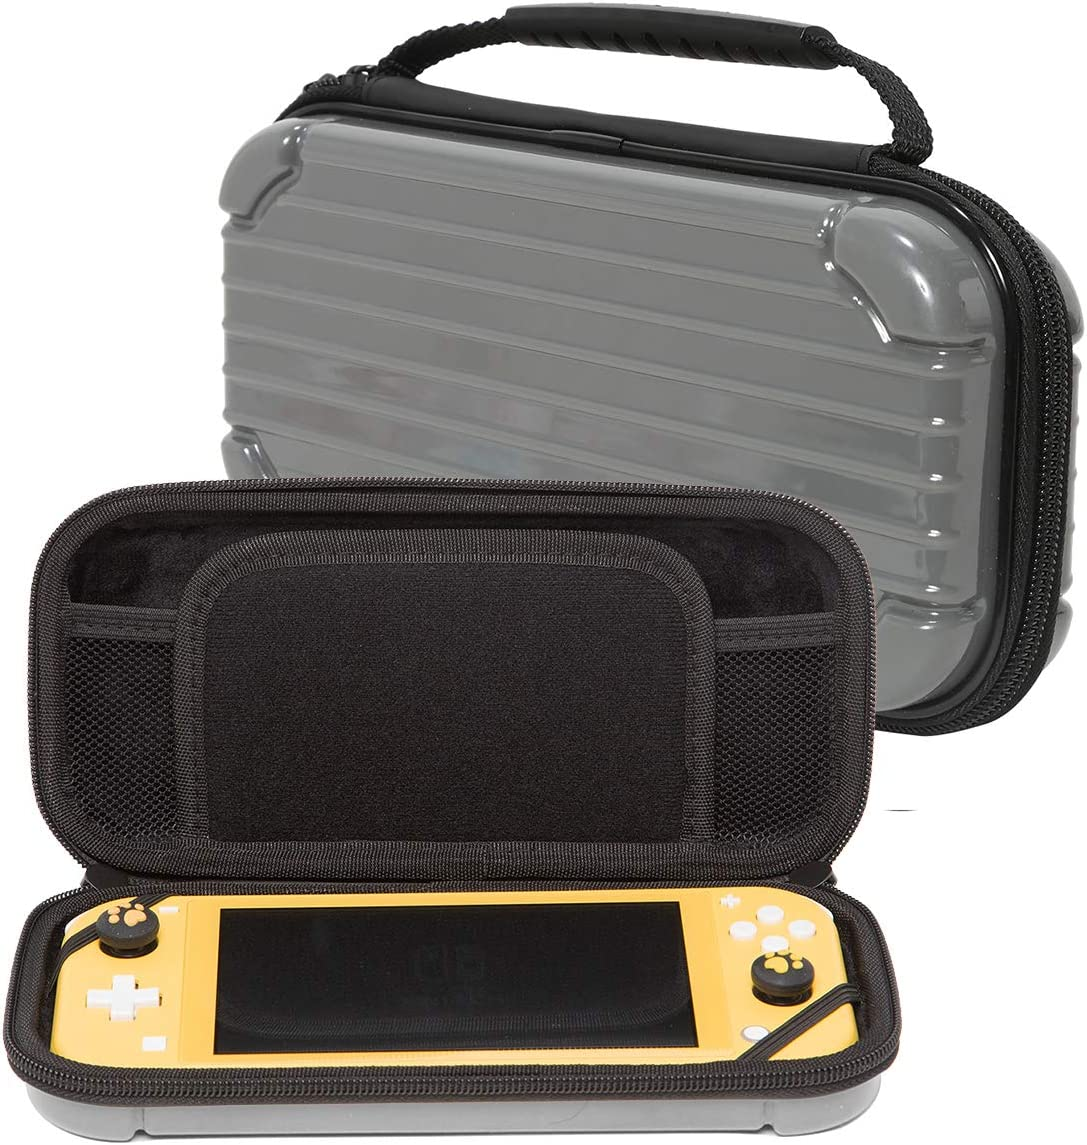 Travel Case for Nintendo Switch, Portable Hard Shell Travel Carrying Bag, Switch Waterproof Case Cover with Storage for Switch Console & Accessories & Game Cards-Gray